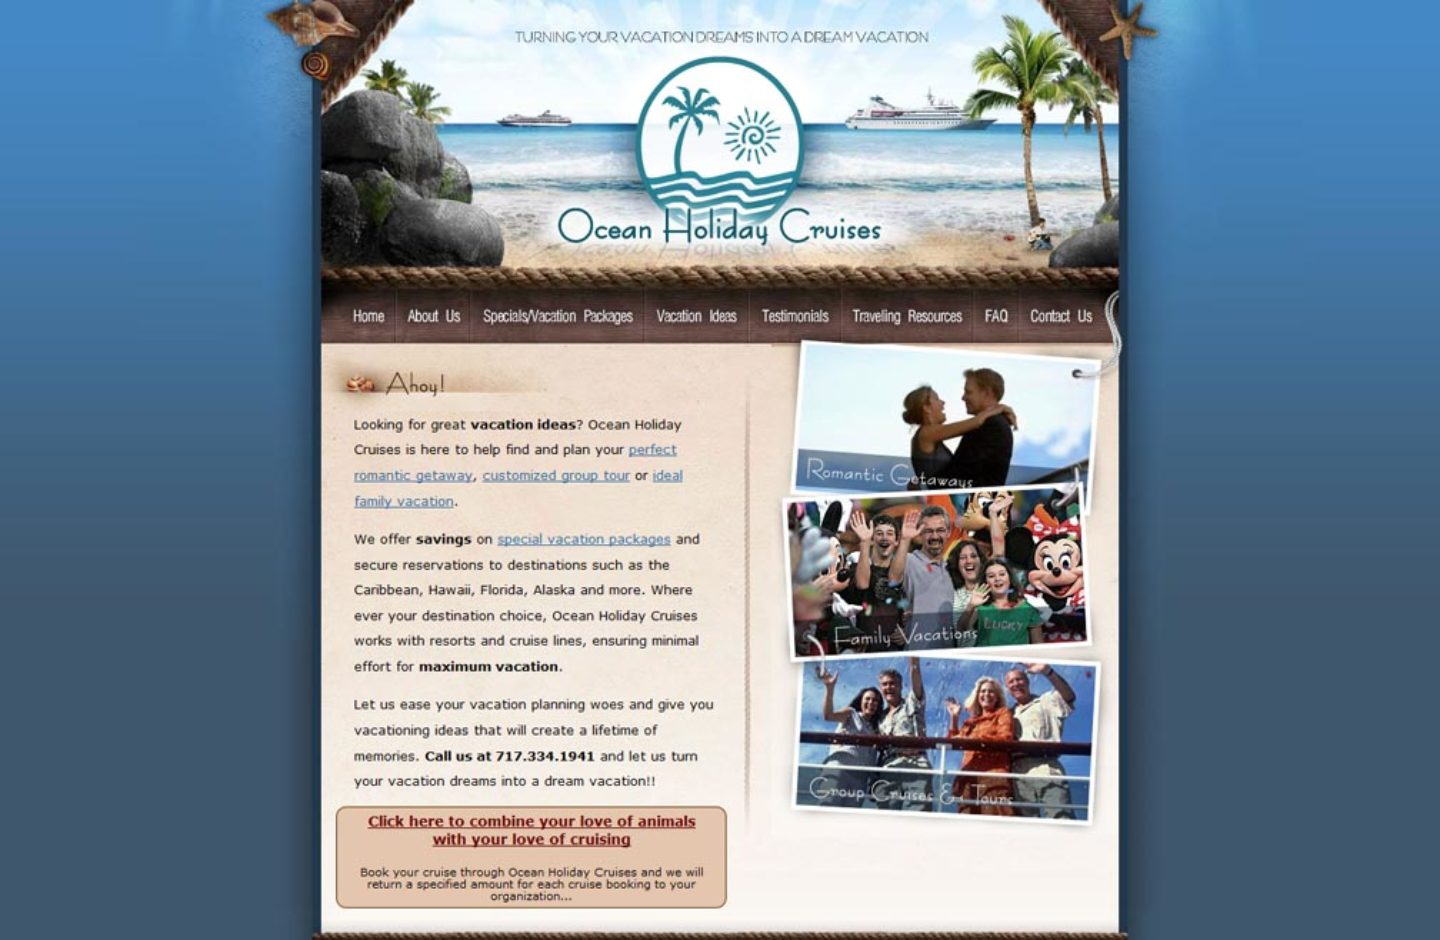 Ocean Holiday Cruises